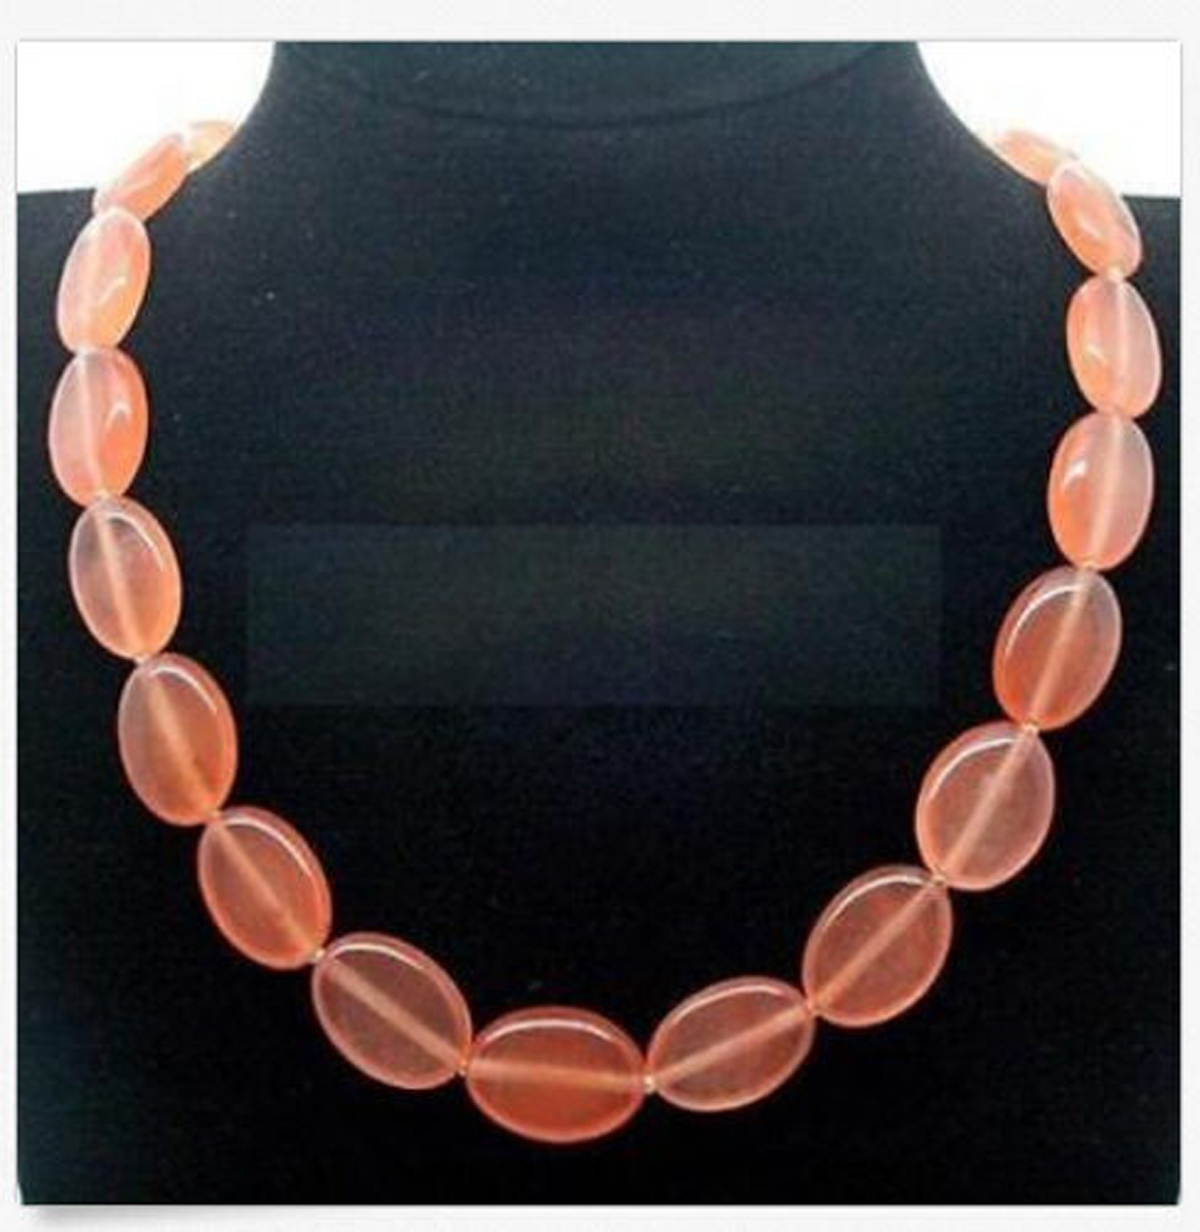 Stunning-Natural-13x18mm-Oval-Gemstone-Necklace-Knot-18Inch-JN2005